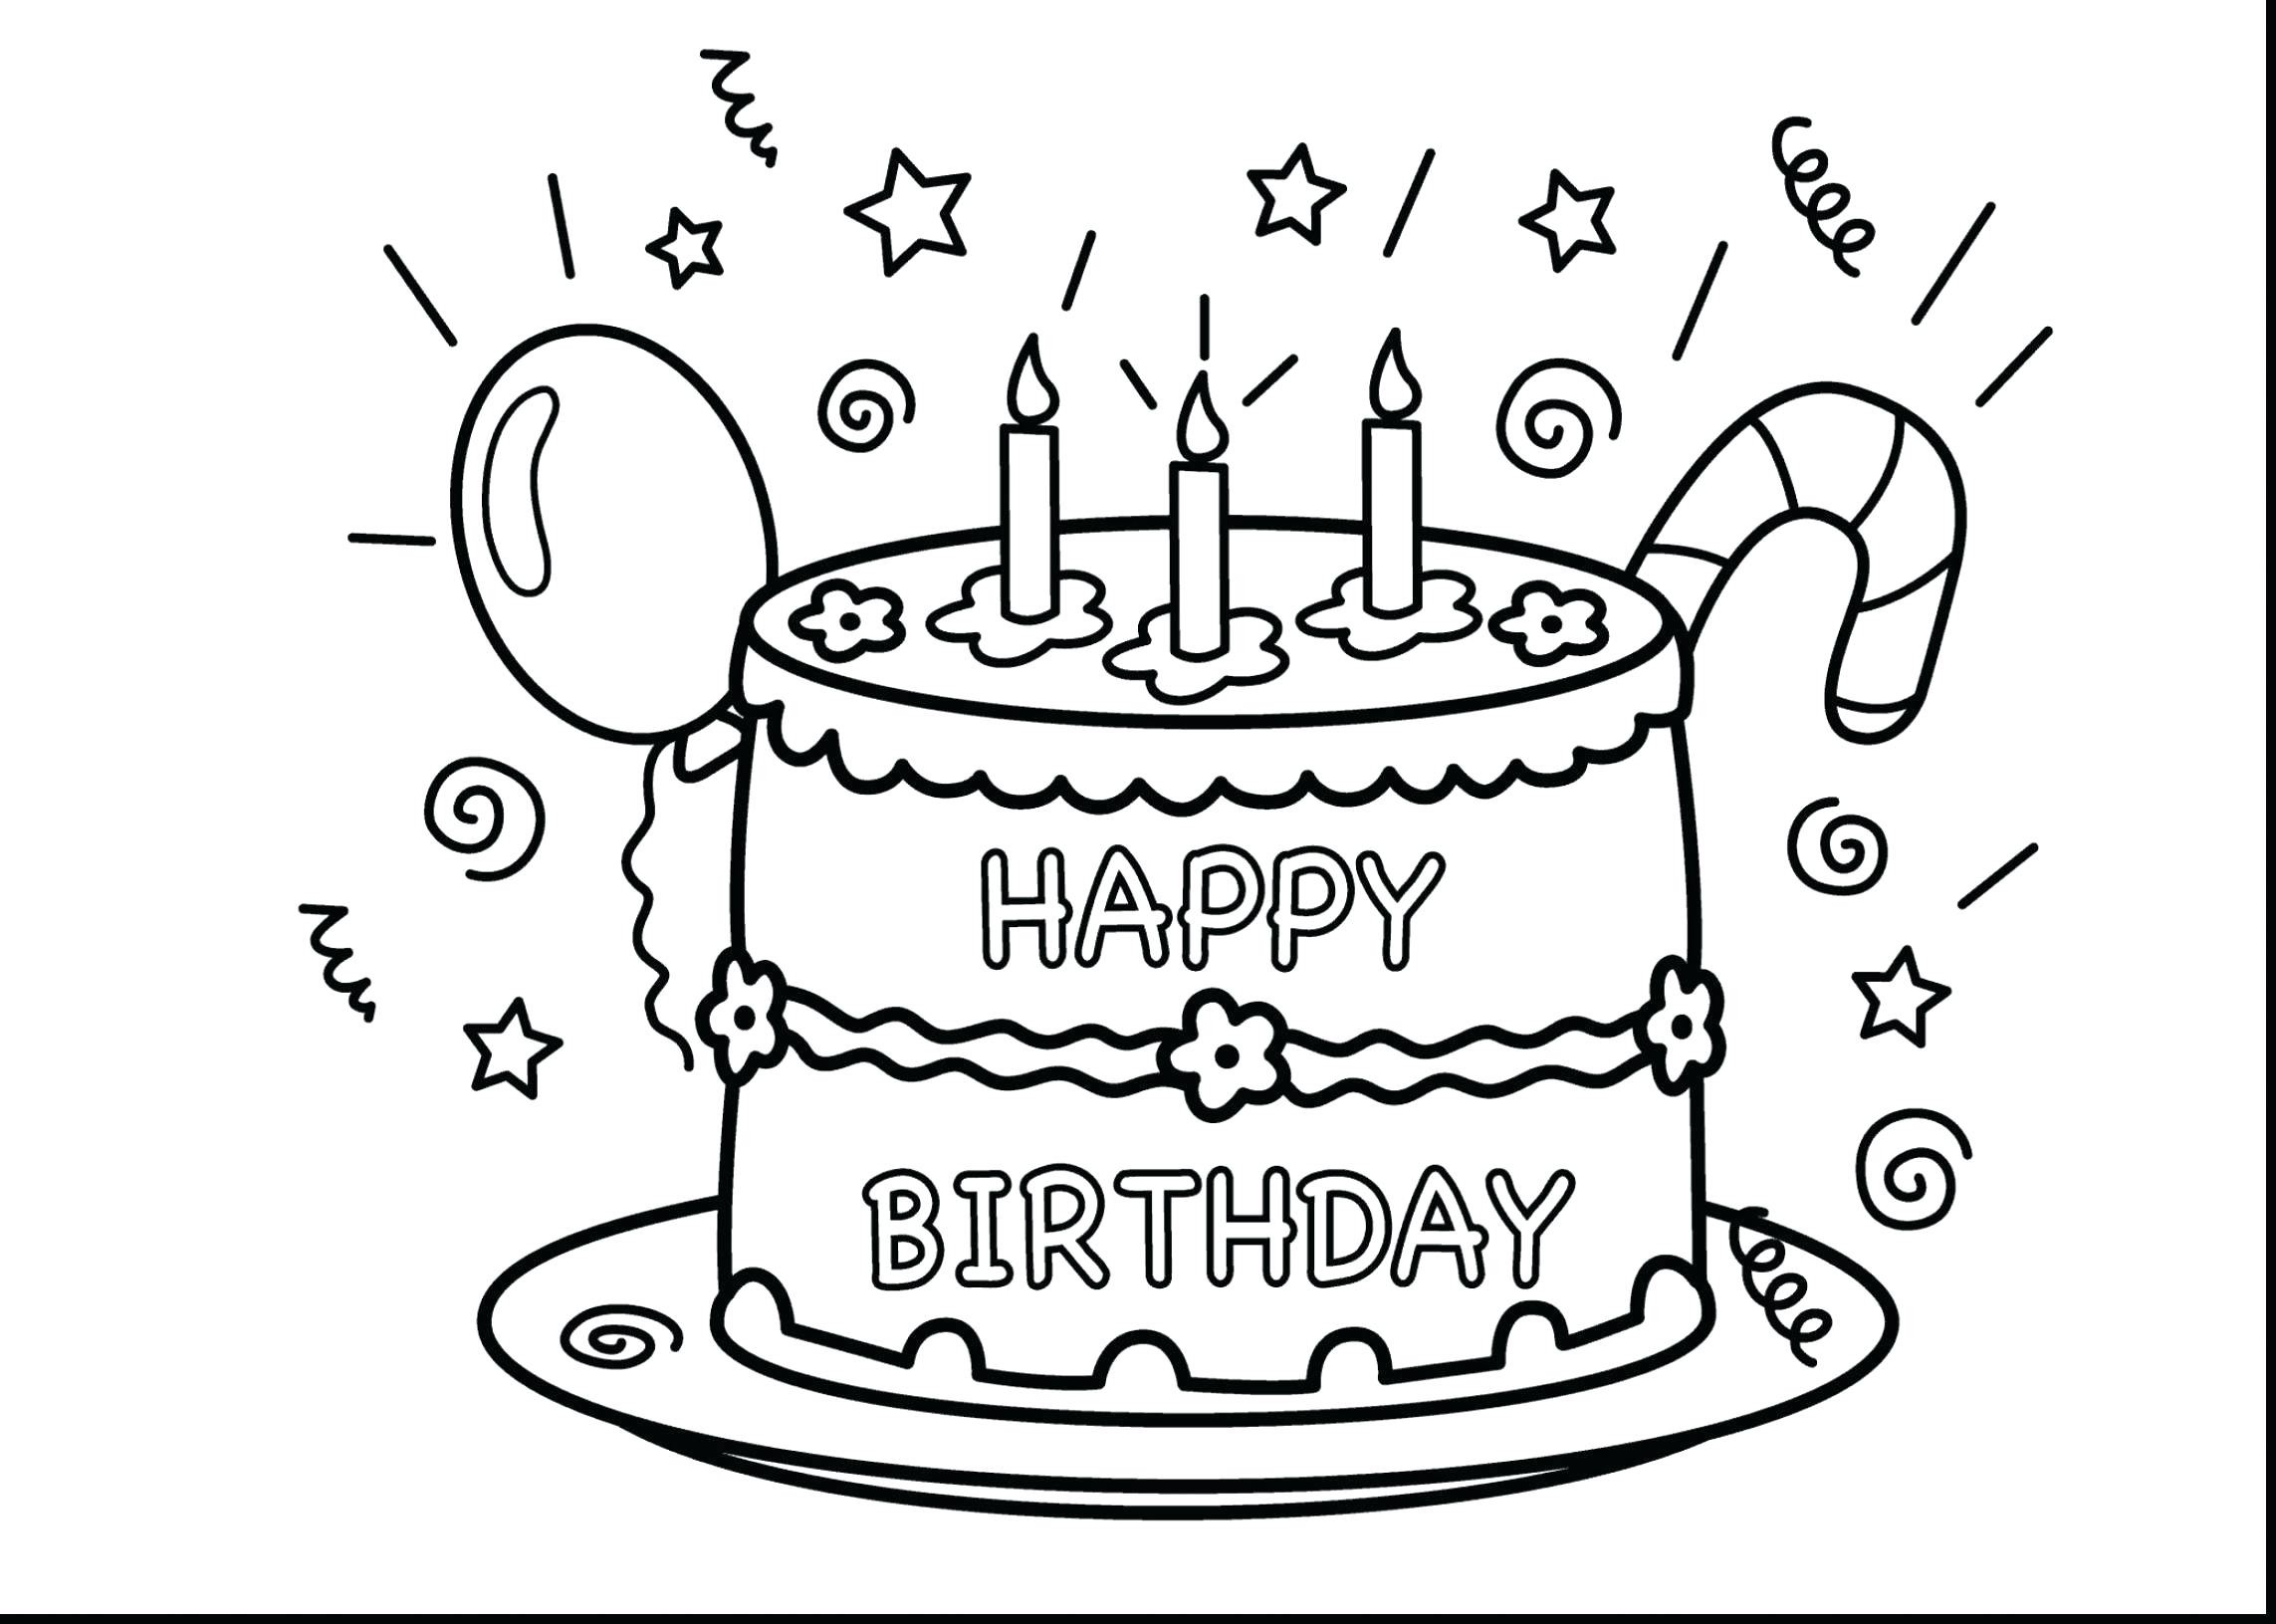 Coloring Pages For Birthday Coloring Pages Cake Coloring Book Birthday Printable Pages New